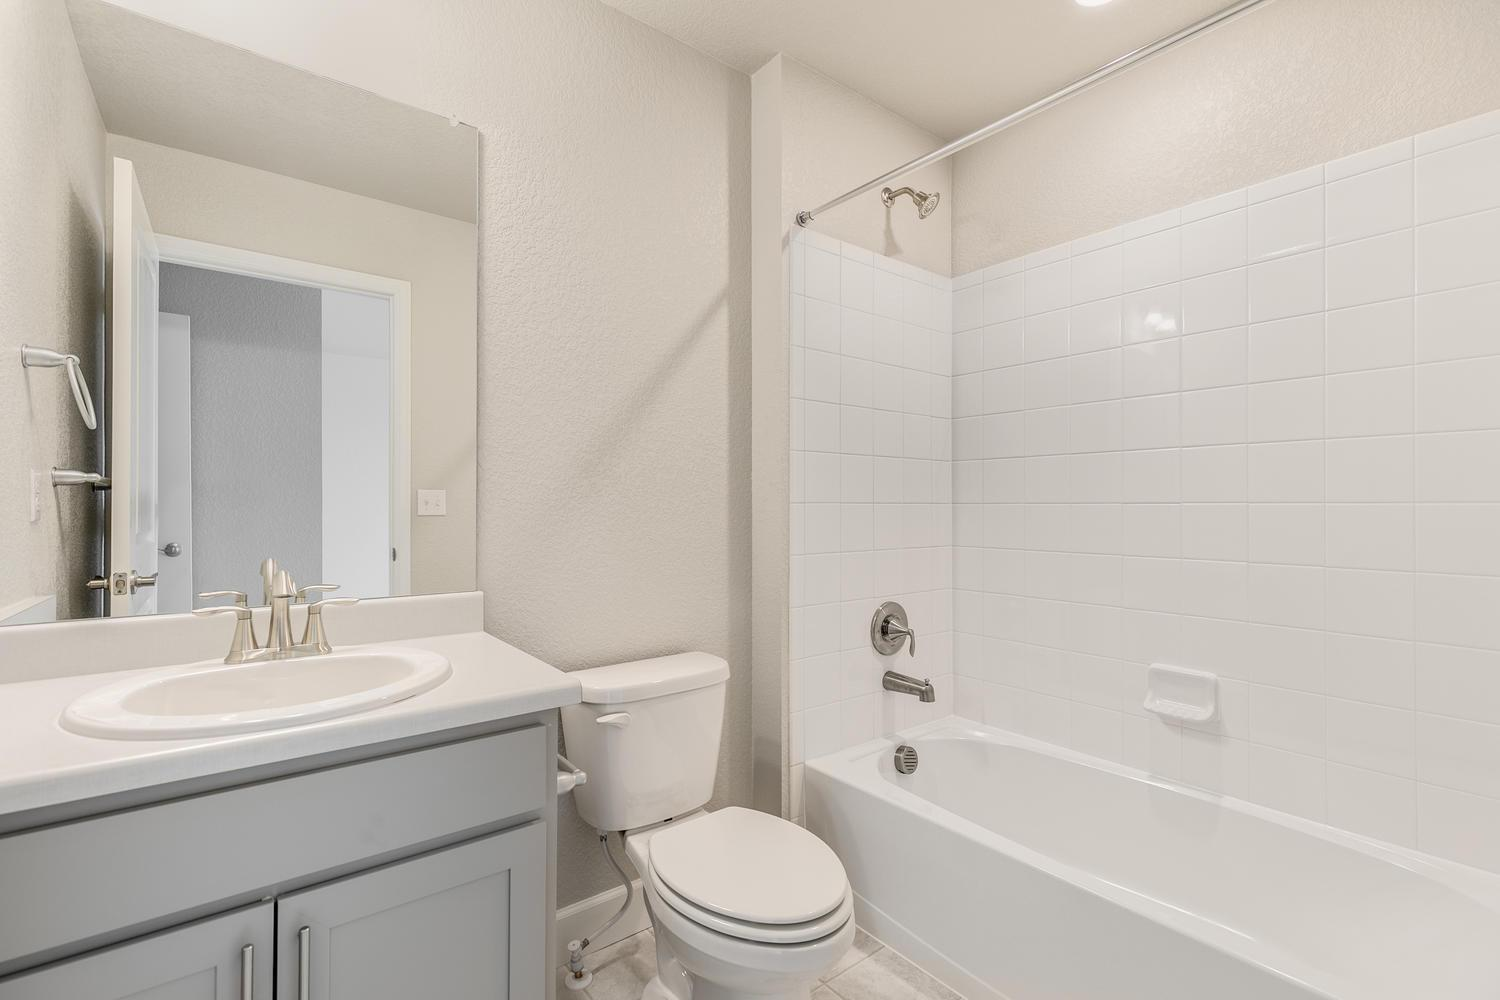 Bathroom featured in the ARVADA By D.R. Horton in Denver, CO